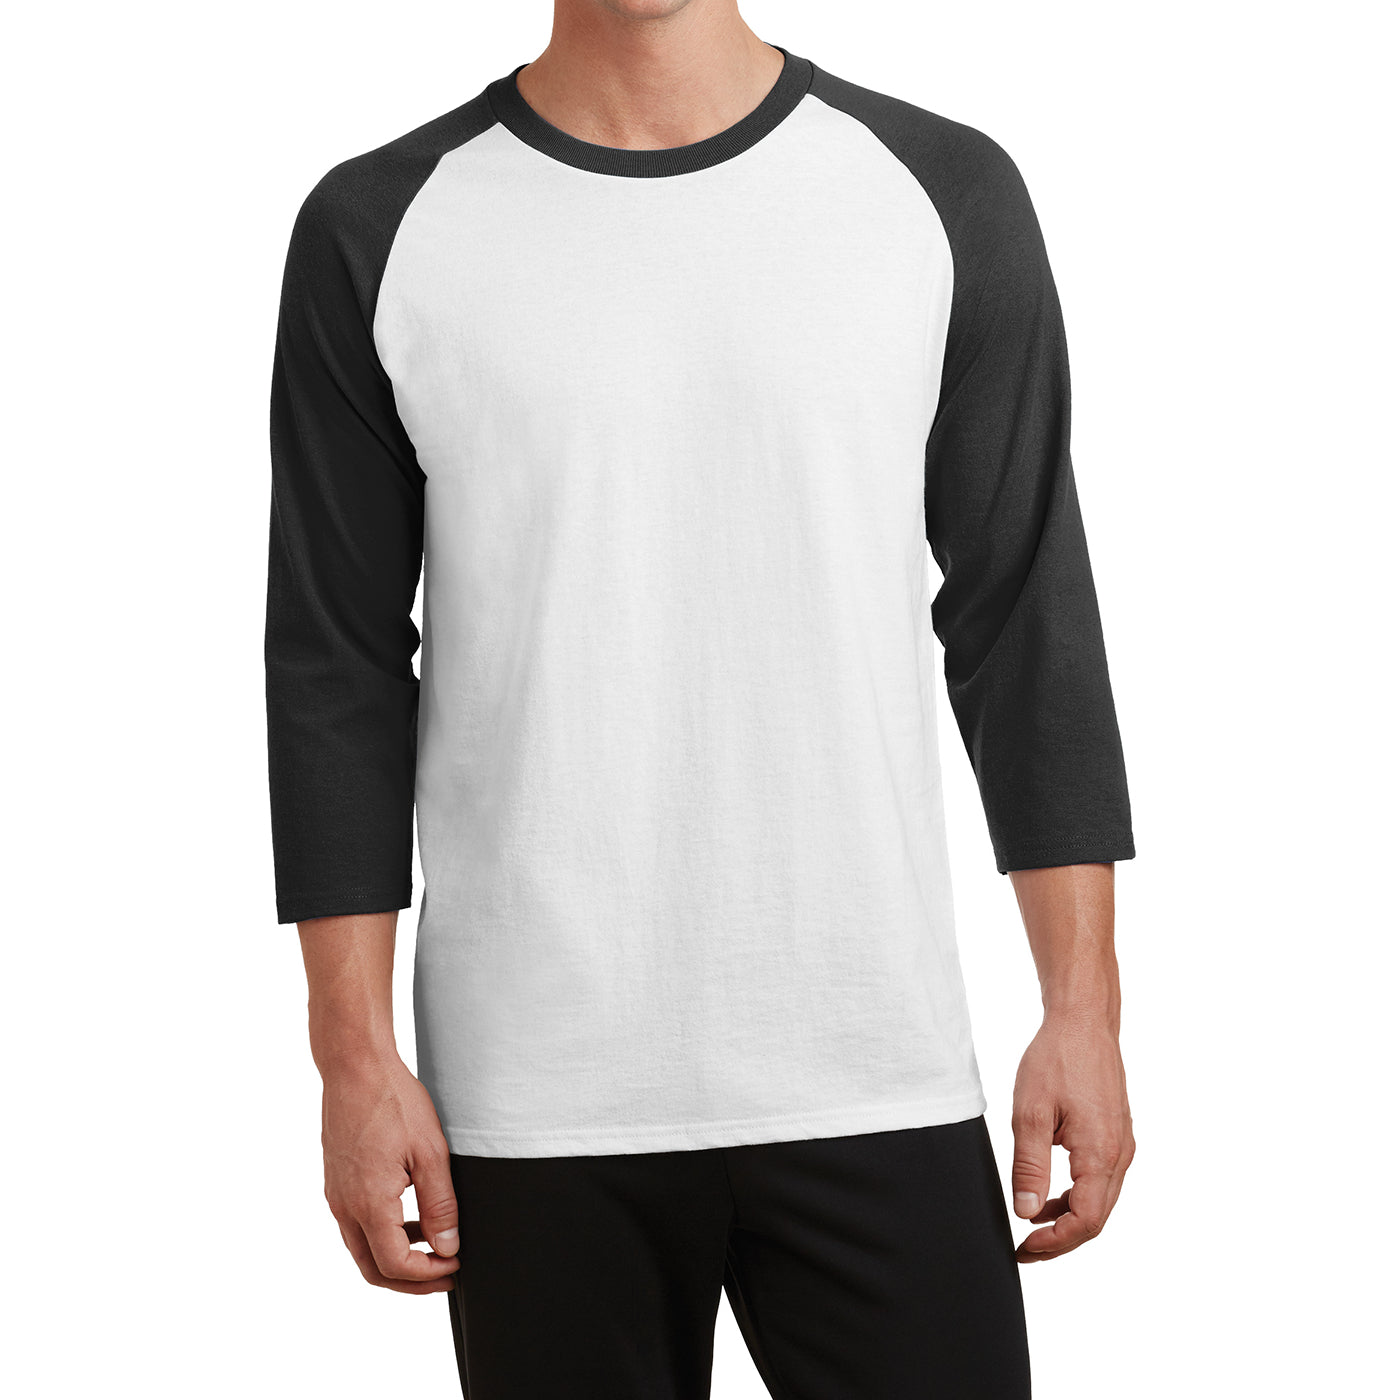 Men's Core Blend 3/4-Sleeve Raglan Tee - White/ Jet Black - Front